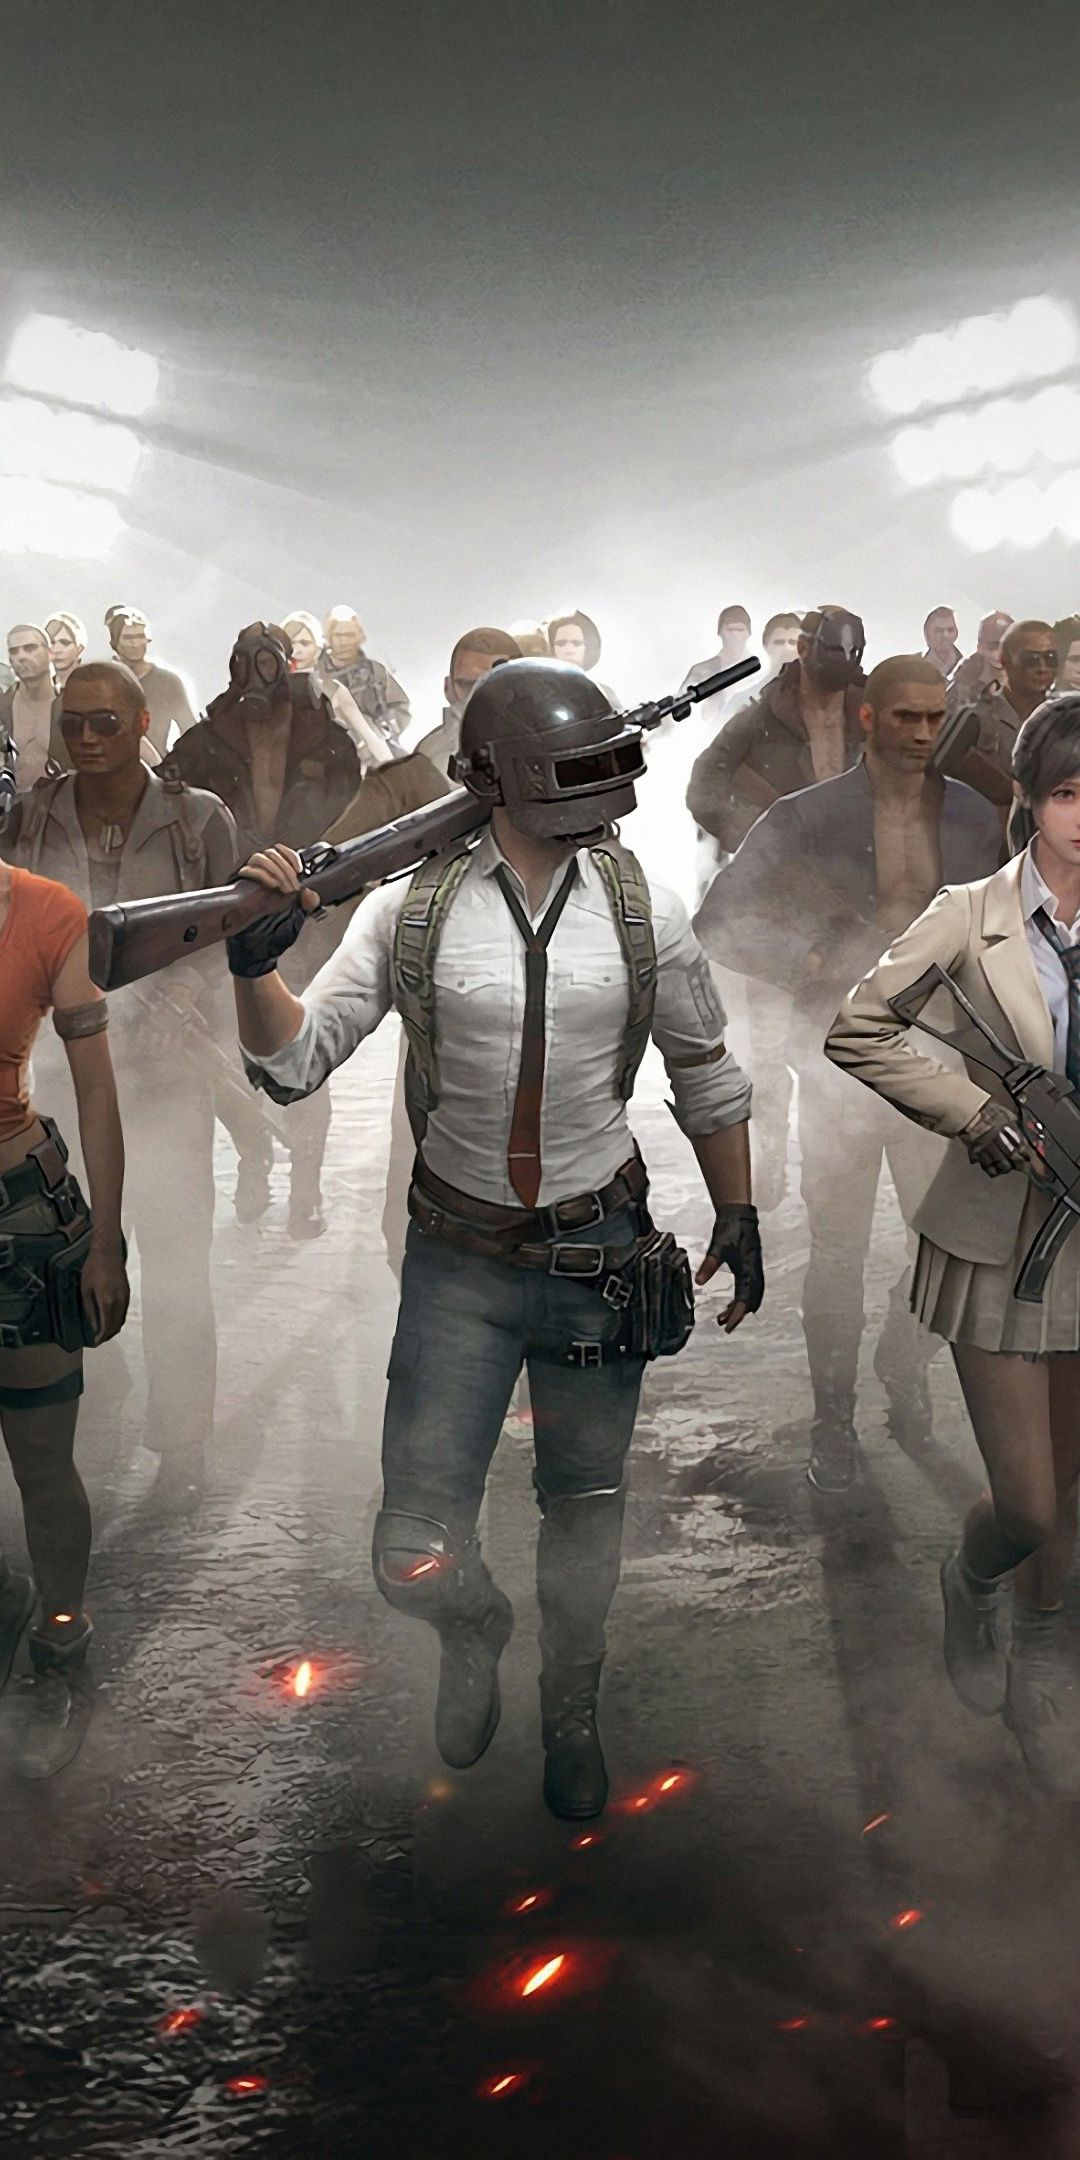 Pubg Playerunknown S Battlegrounds Video Game Characters 2018 1080x2160 Wallpaper Hd Wallpapers For Mobile Mobile Wallpaper Gaming Wallpapers